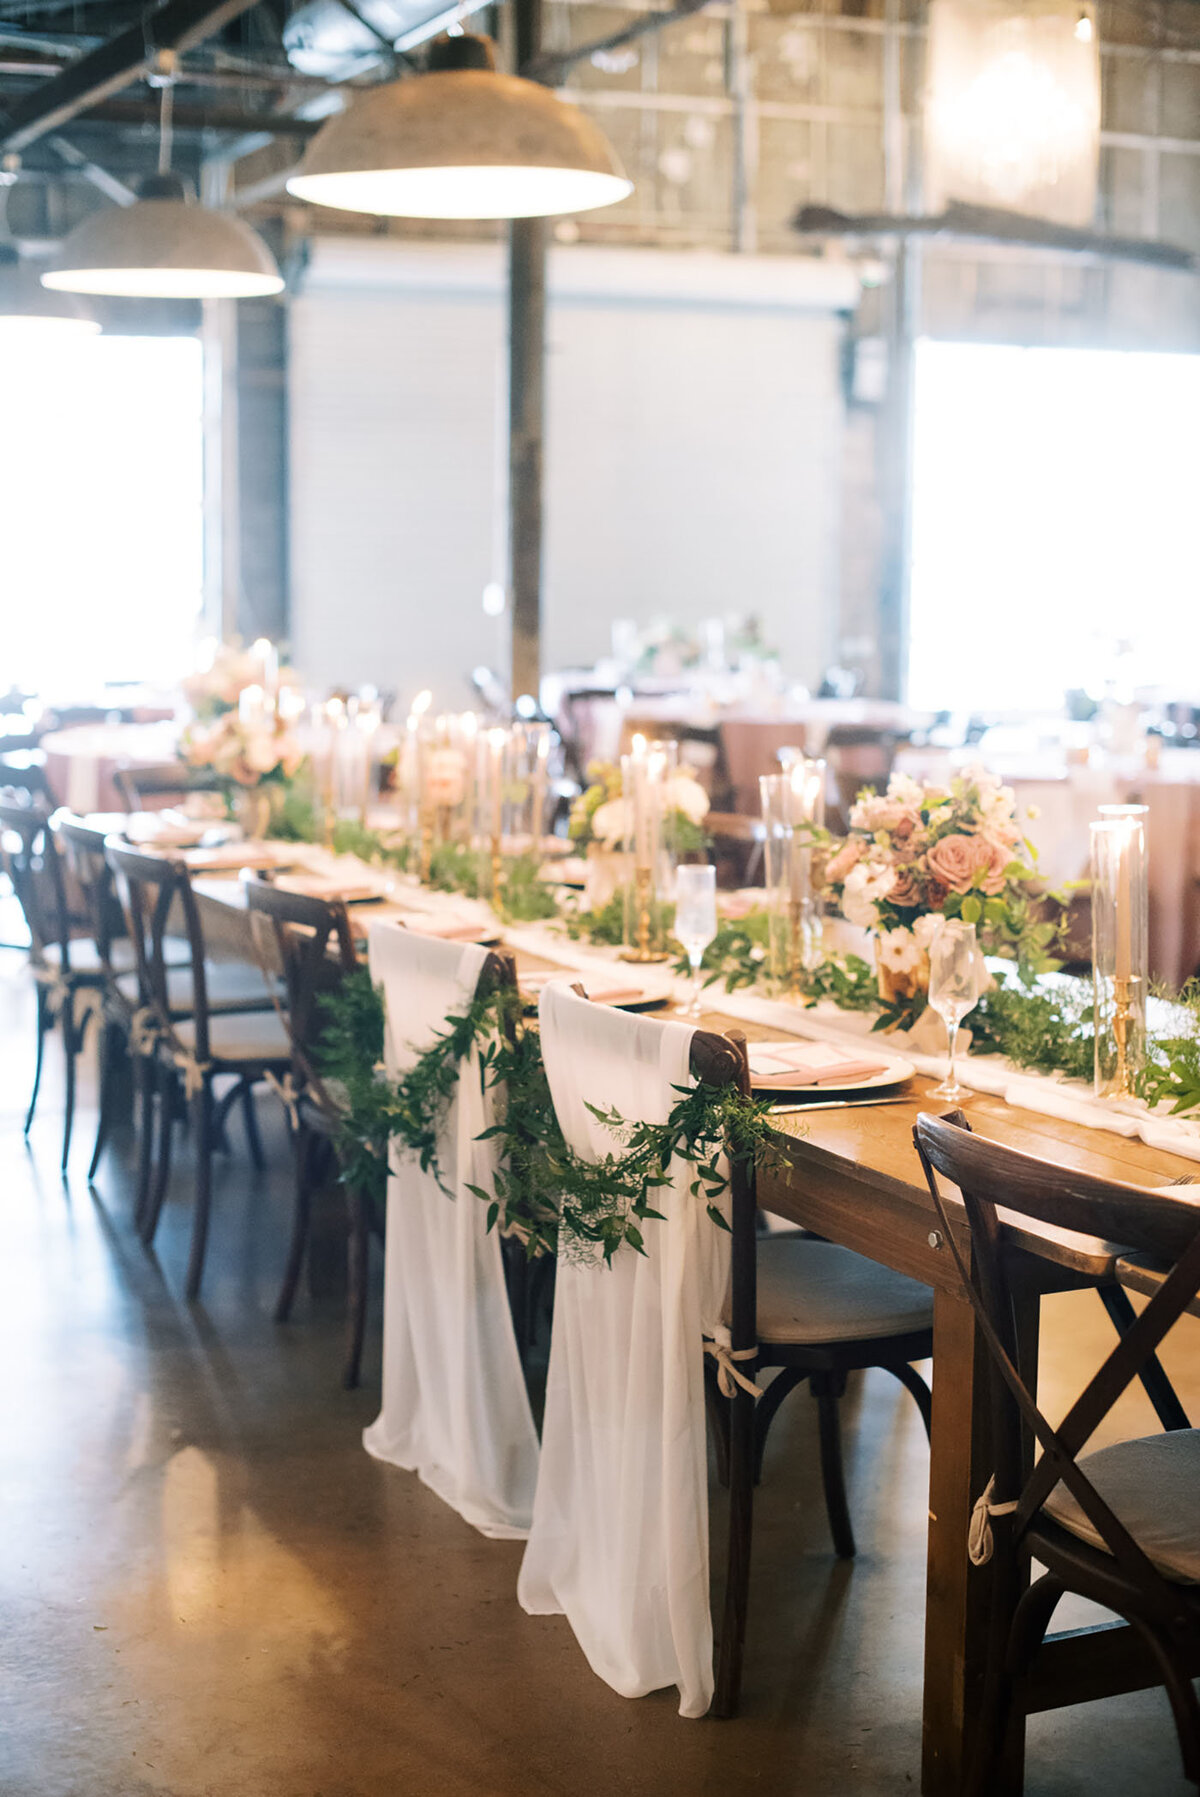 Allora & Ivy Event Co - Dallas Wedding Planner - Christina Ronny - 4eleven